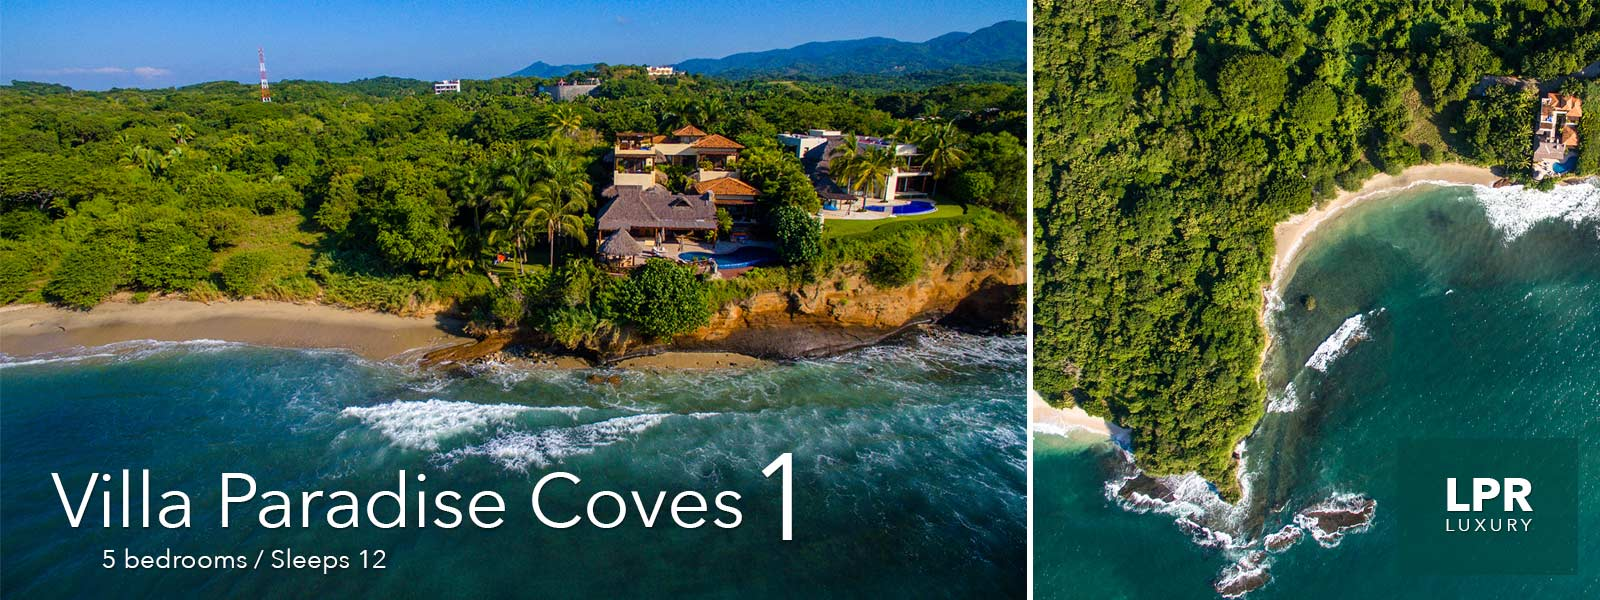 Villa Paradise Coves 1 - Luxury North shore Puerto Vallarta restate and vacation rentals